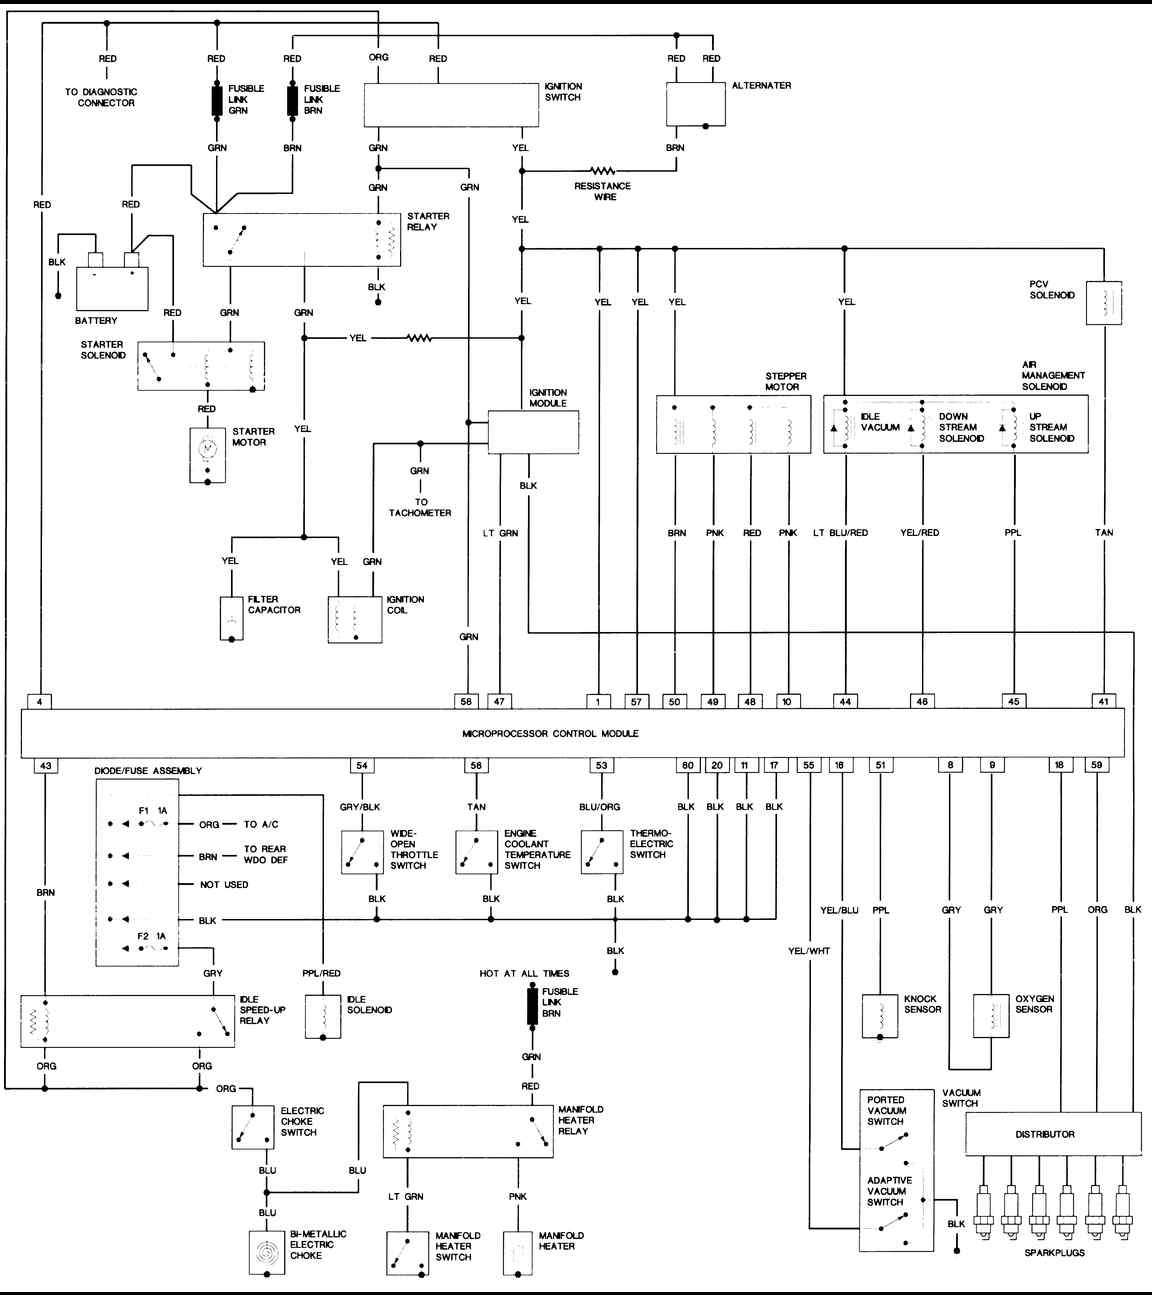 1987 jeep wrangler 4.2L engine 1987 jeep wrangler 4 2l engine(large) freeautomechanic 2007 jeep wrangler wiring diagram at edmiracle.co